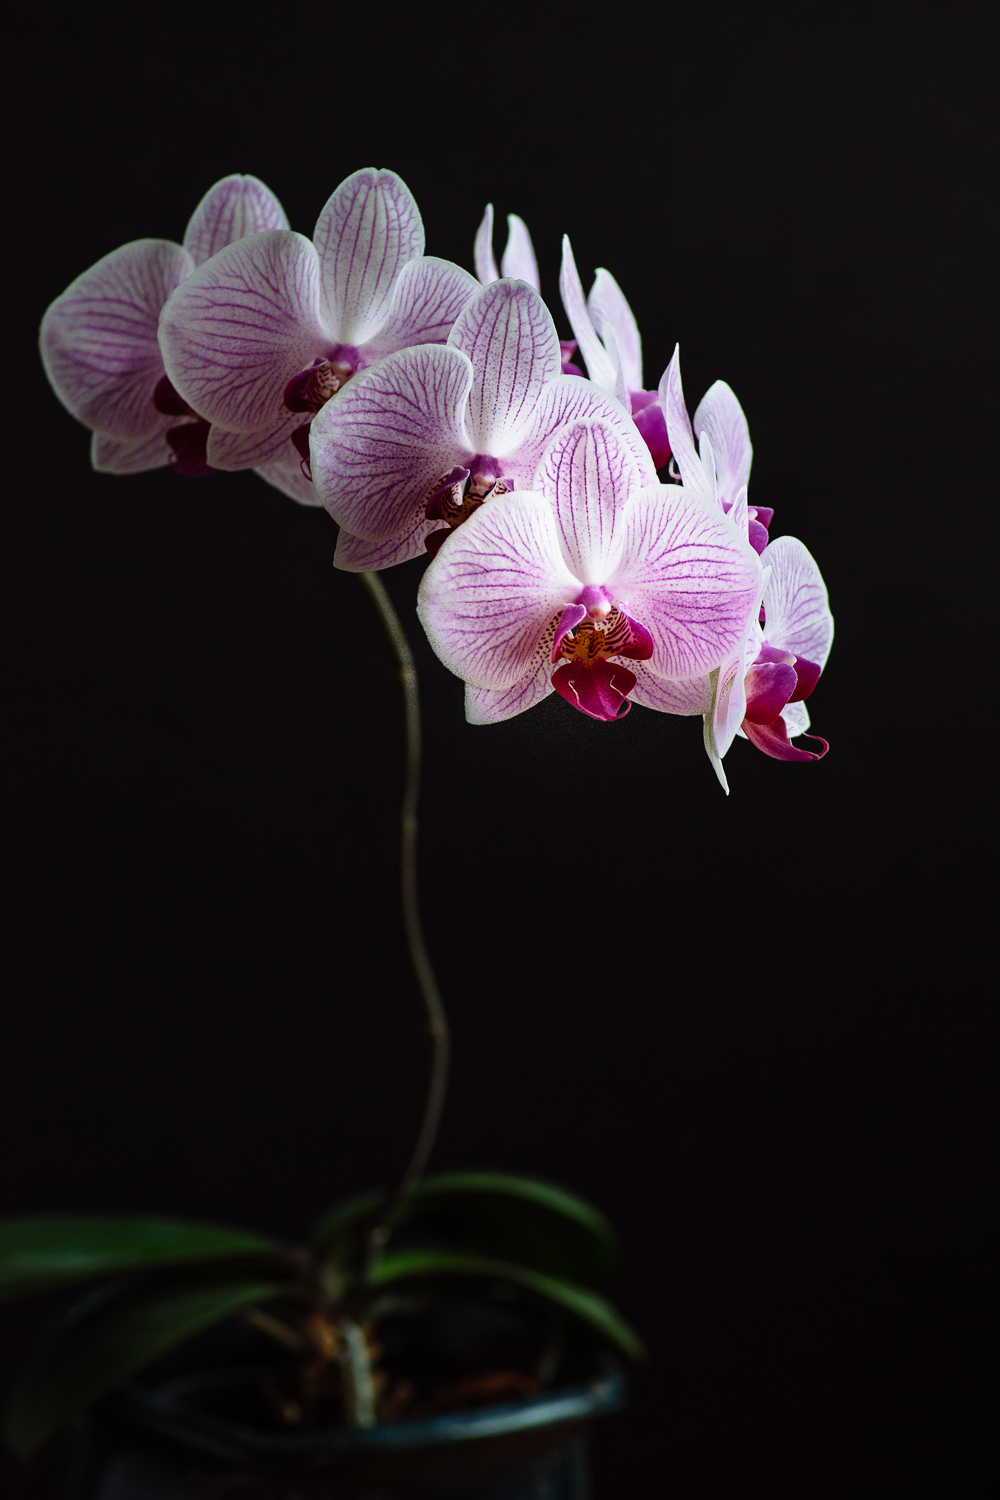 151216__DSC0294_blooming_orchid_Barb_Kellogg_1500px.jpg